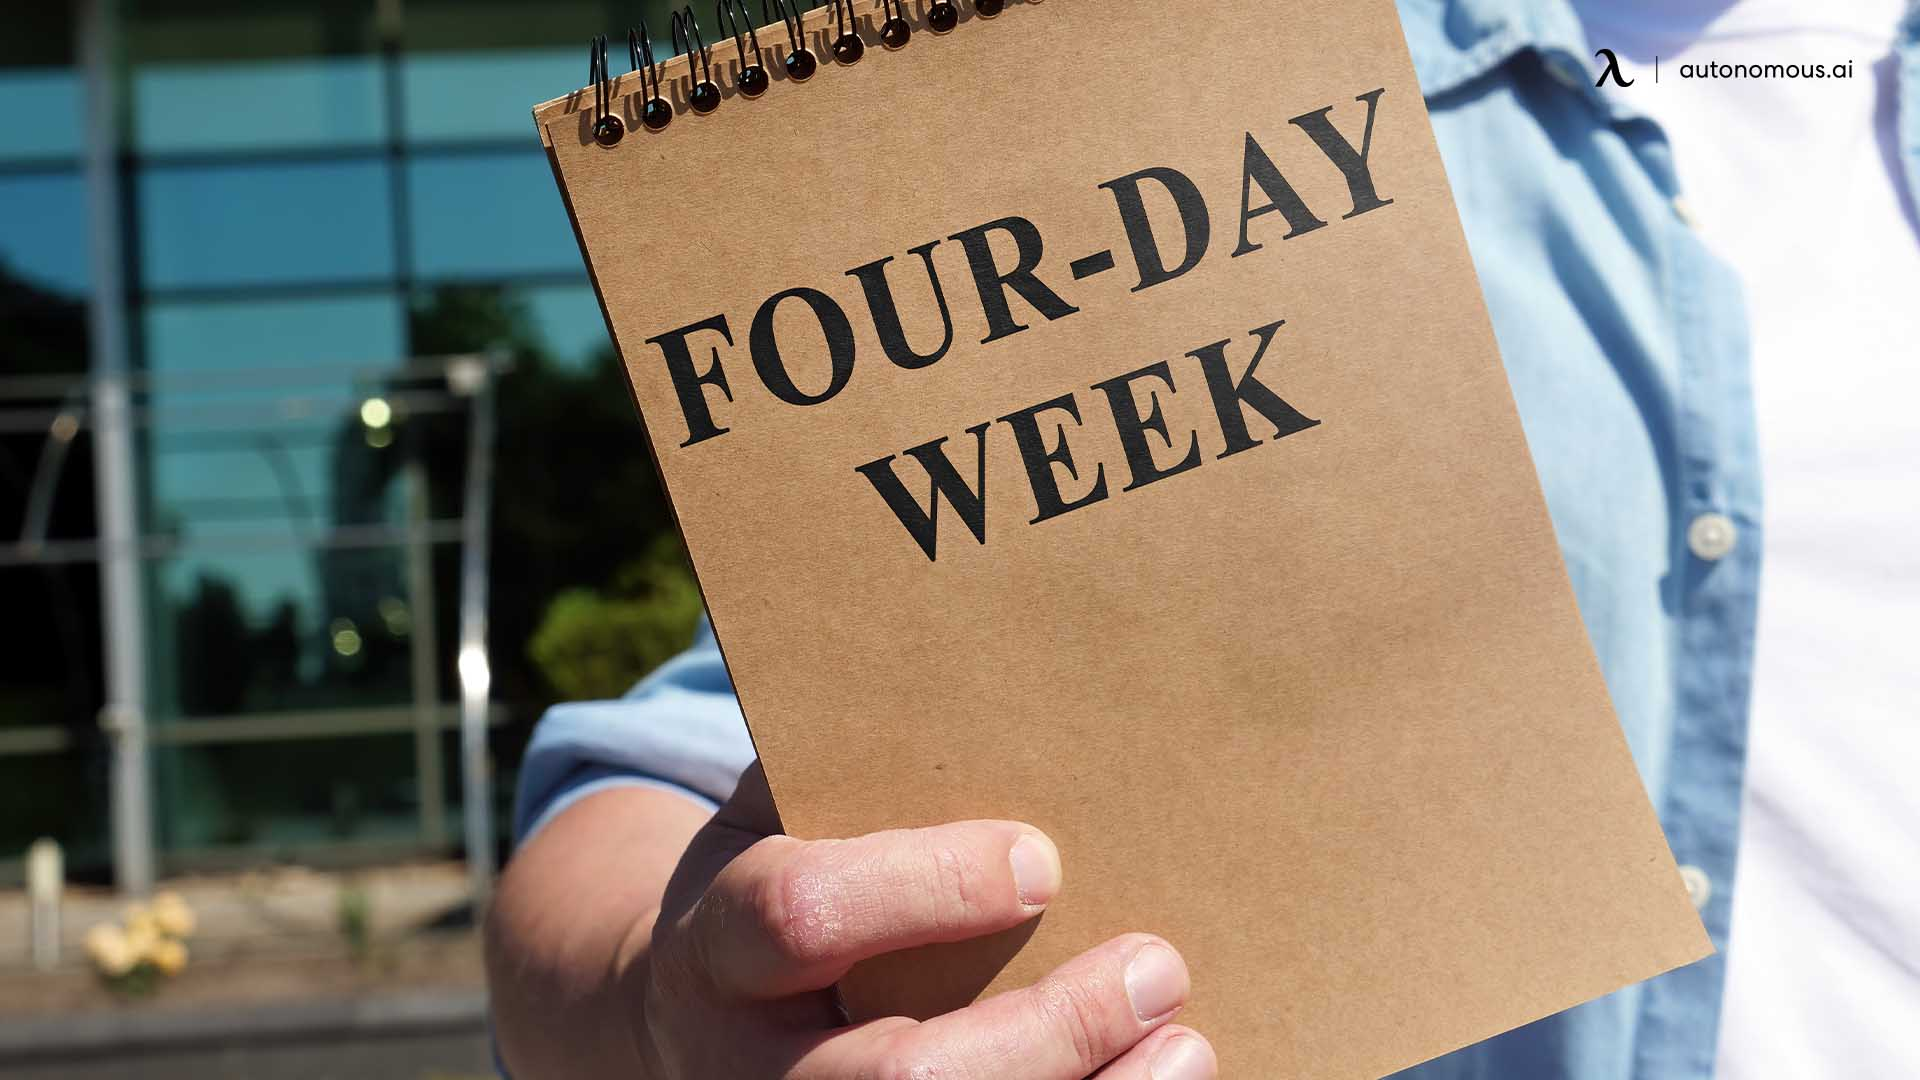 Practice a Four-Day Week